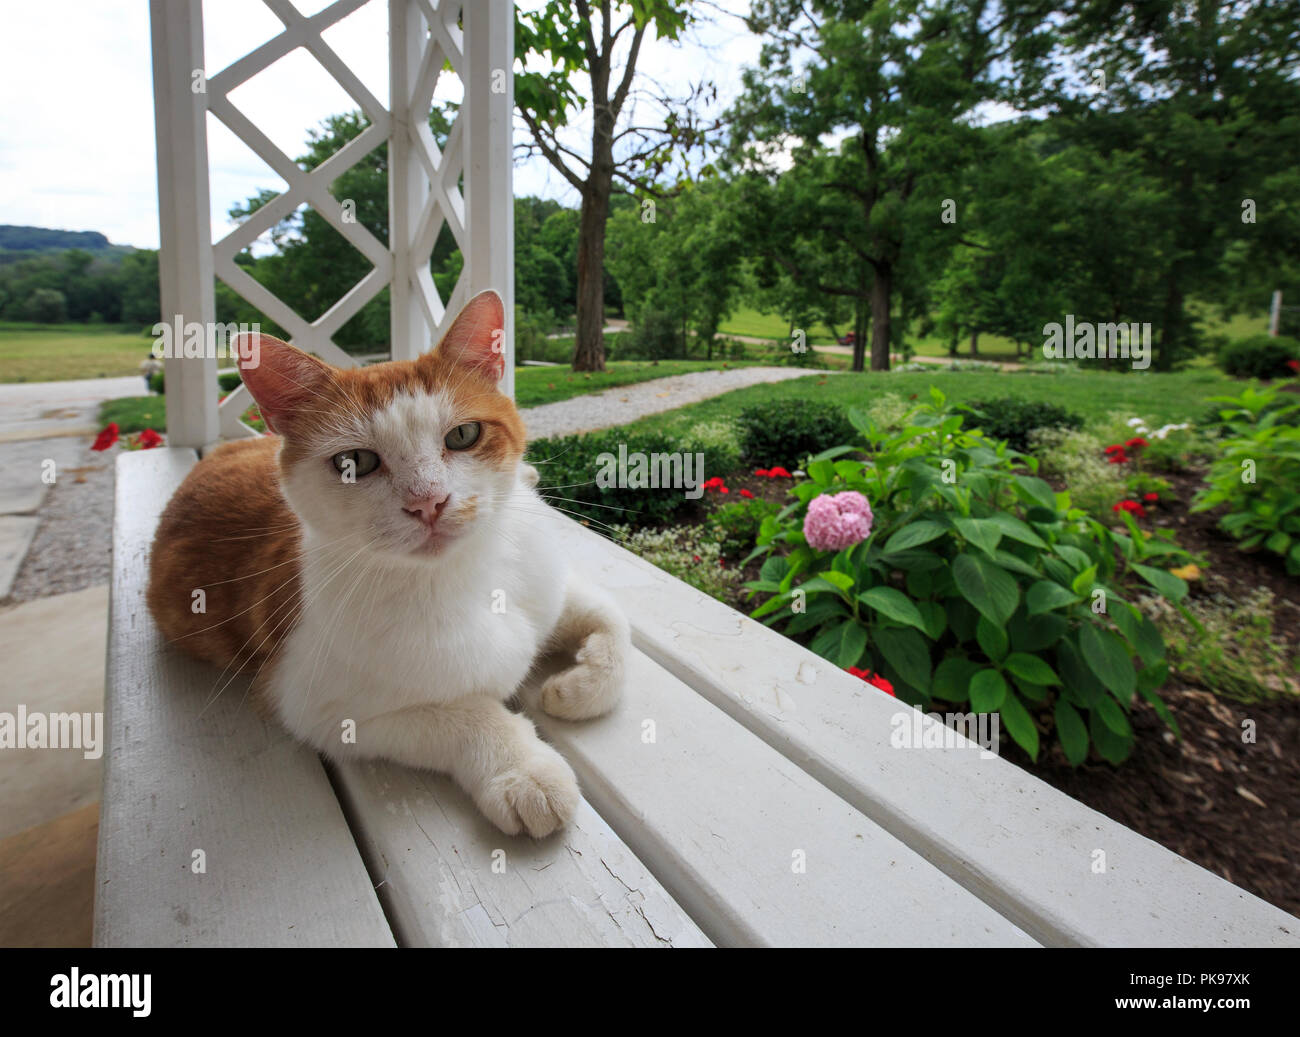 OUtdoor house cat resting on a railing. - Stock Image